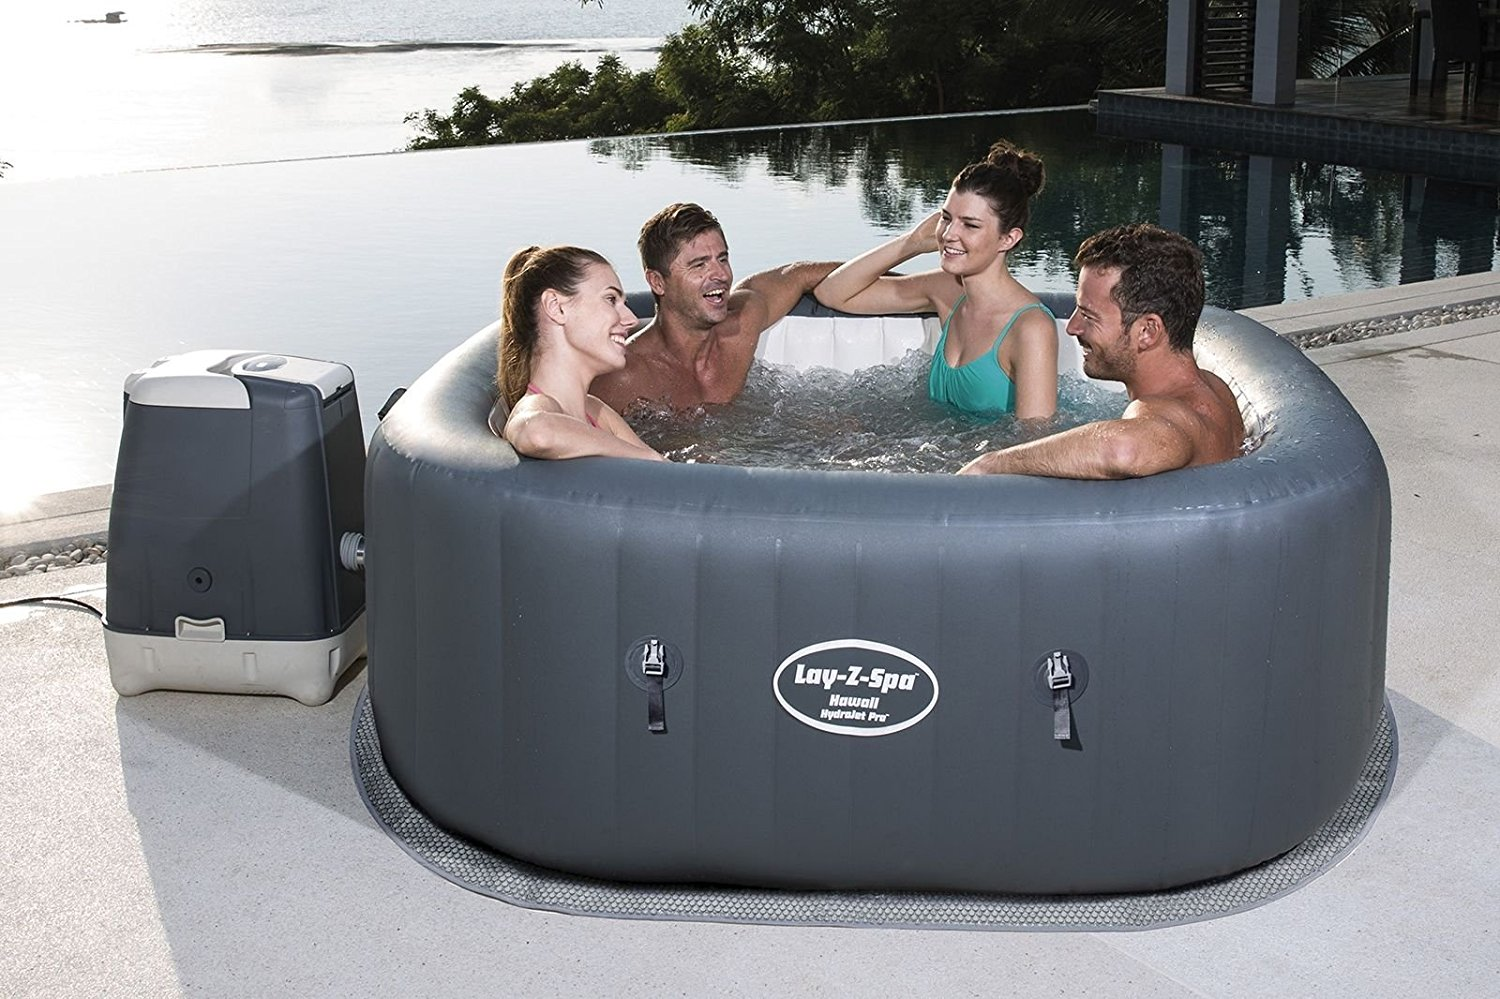 jacuzzi lay z hawaii barato